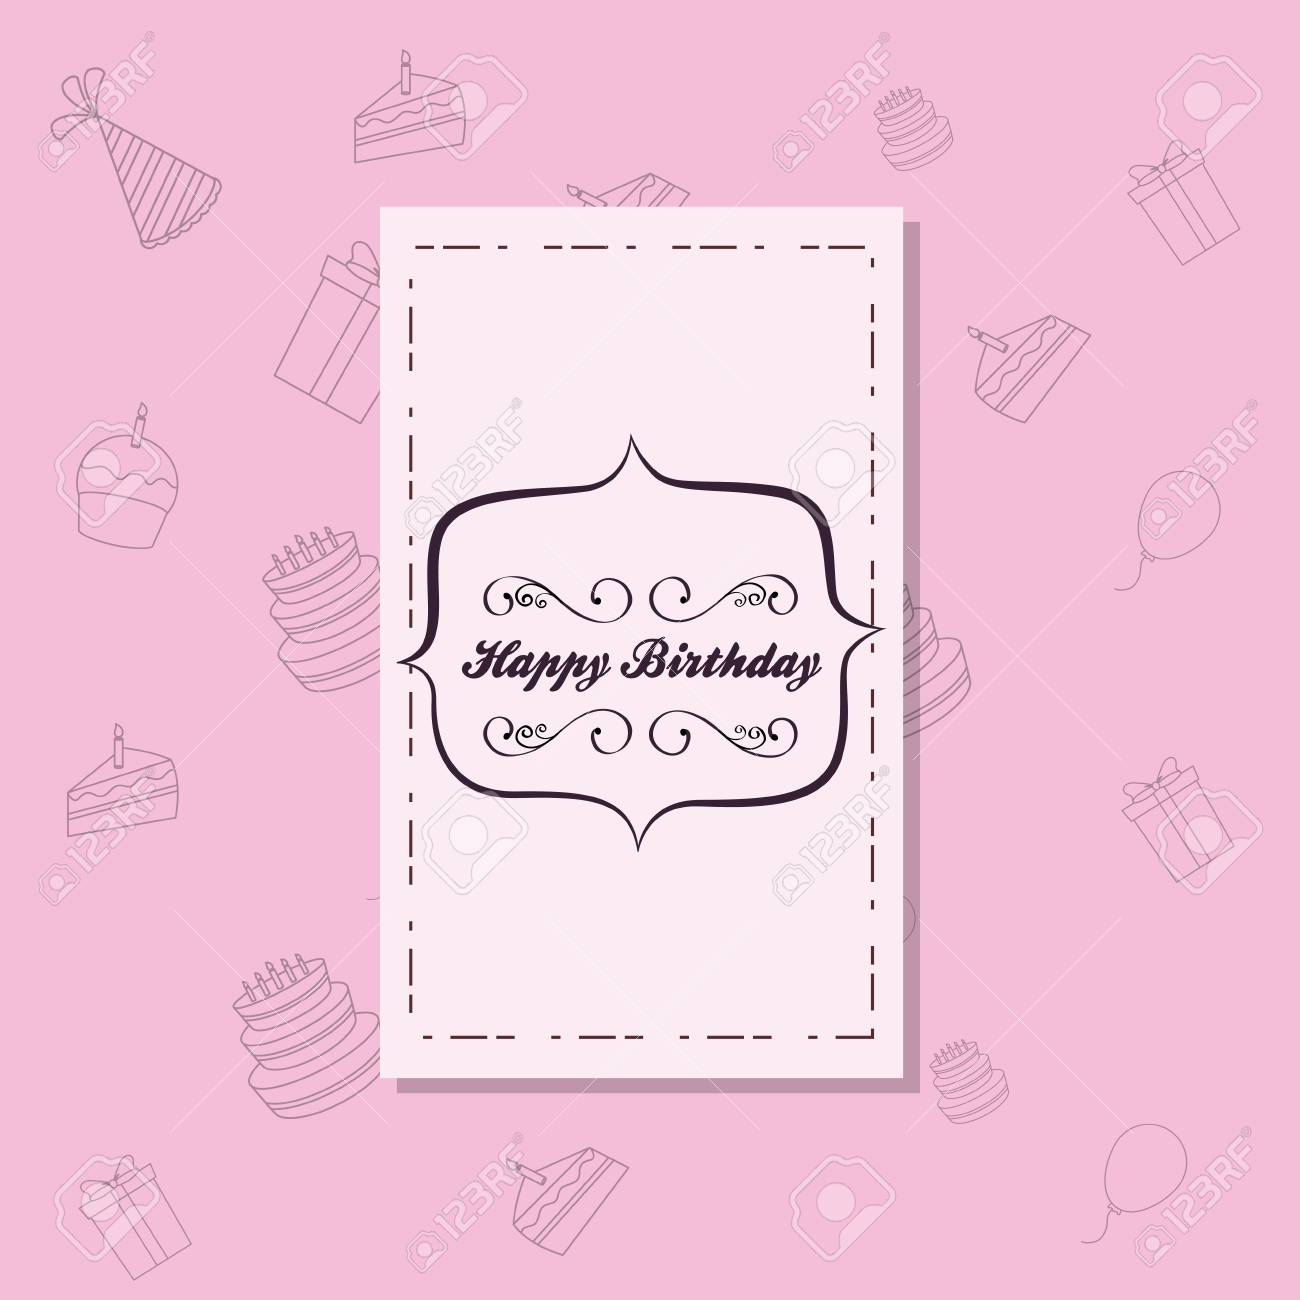 Happy Birthday Invitation Card With Decorative Frame Over Pink